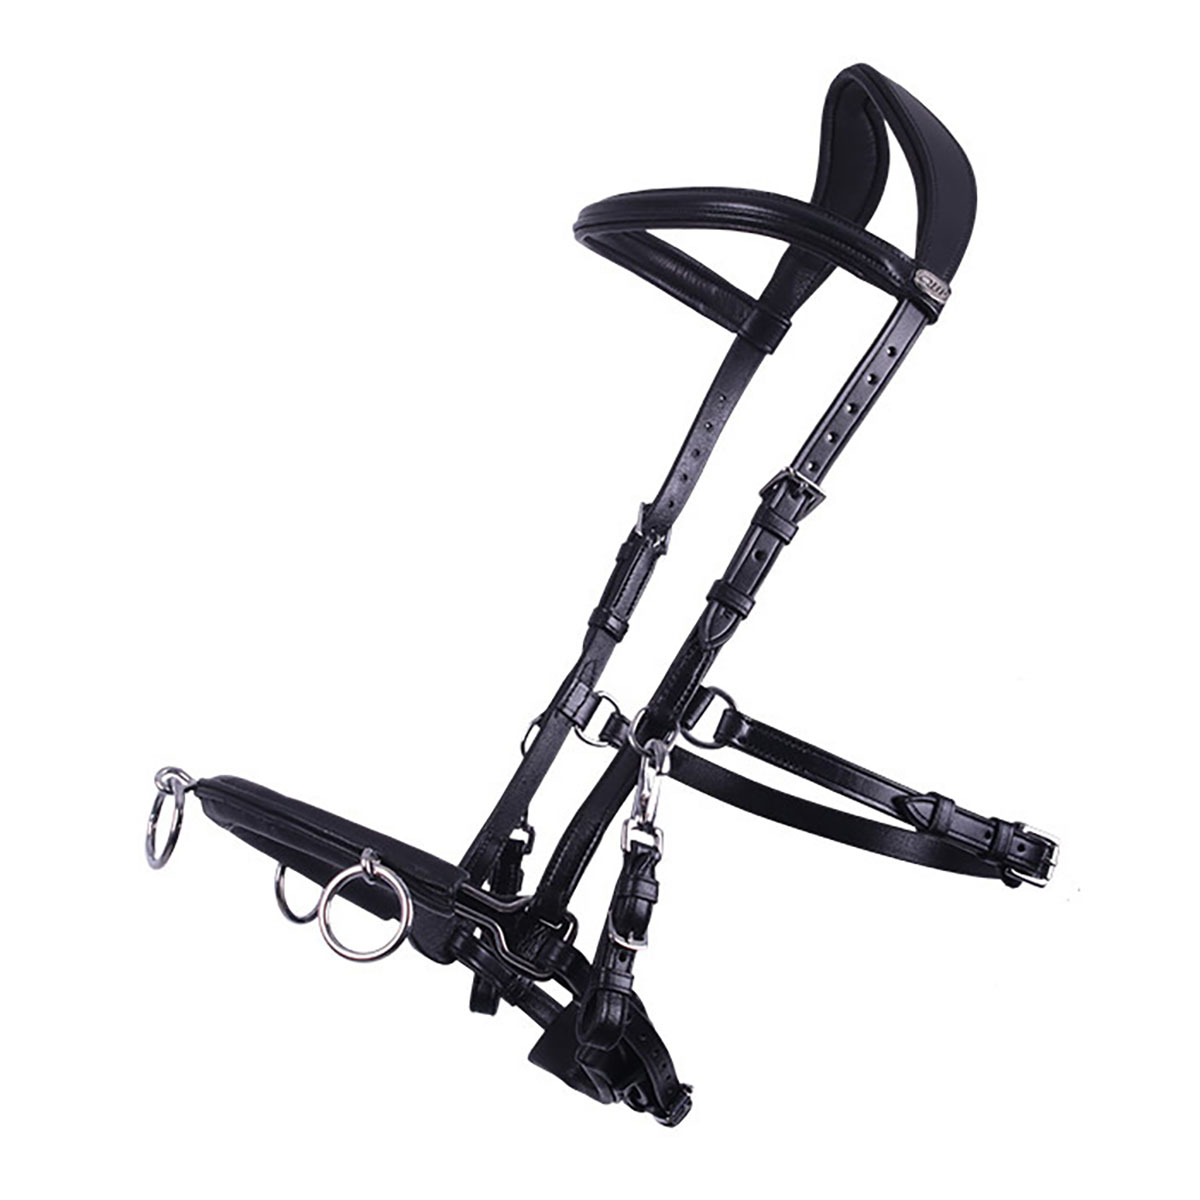 Rijlegging Kingsland Update Klkatja Siliconen, 36�in dark grey